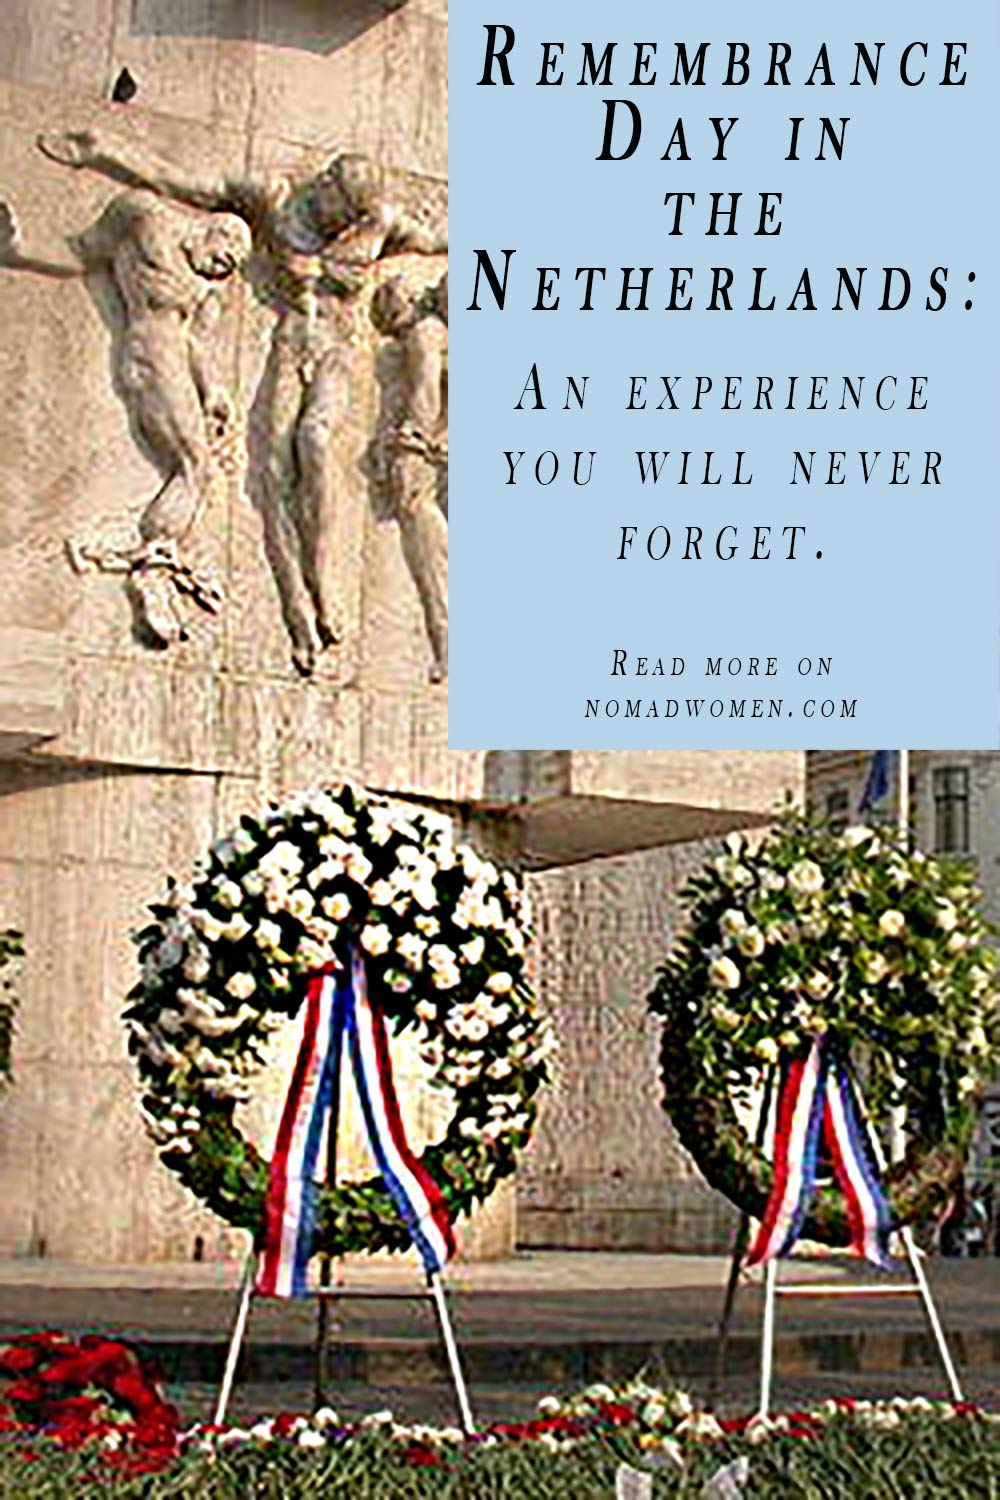 Pin image for Remembrance Dahy in the netherlands, showing floral wreaths at the war monument in Dam Square, Amsterdam.